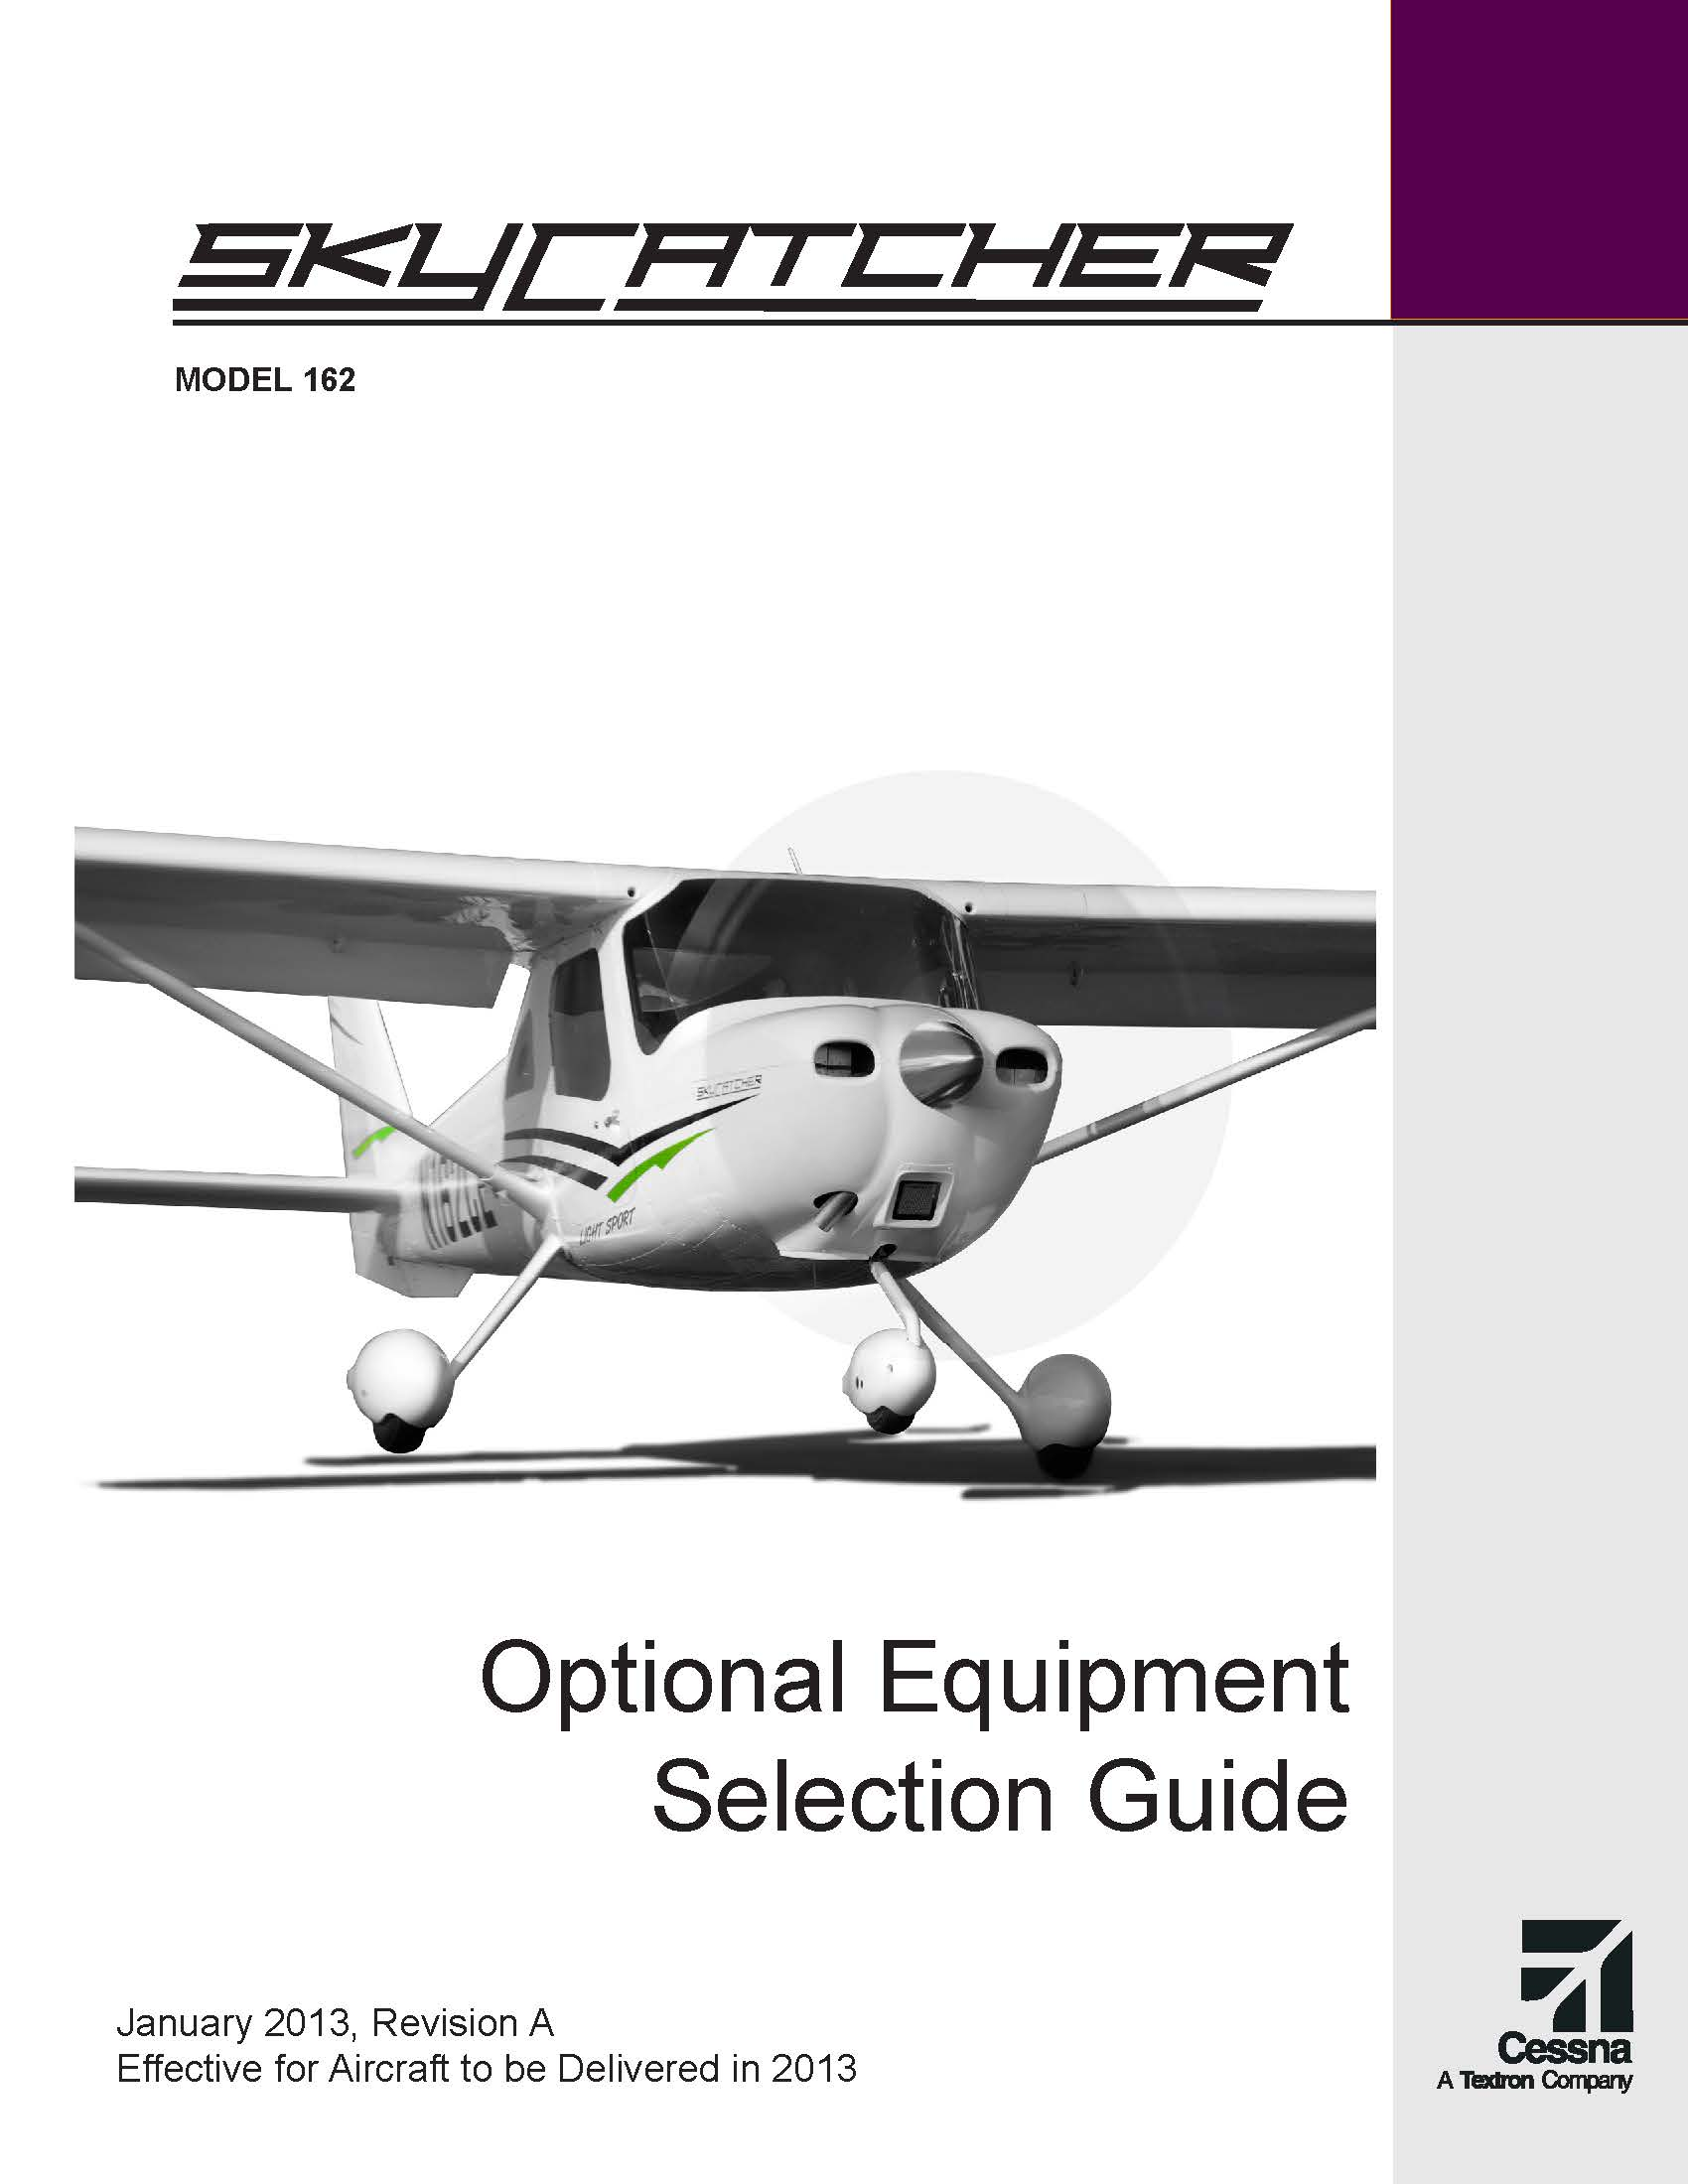 Cessna Skycatcher optional equipment guide